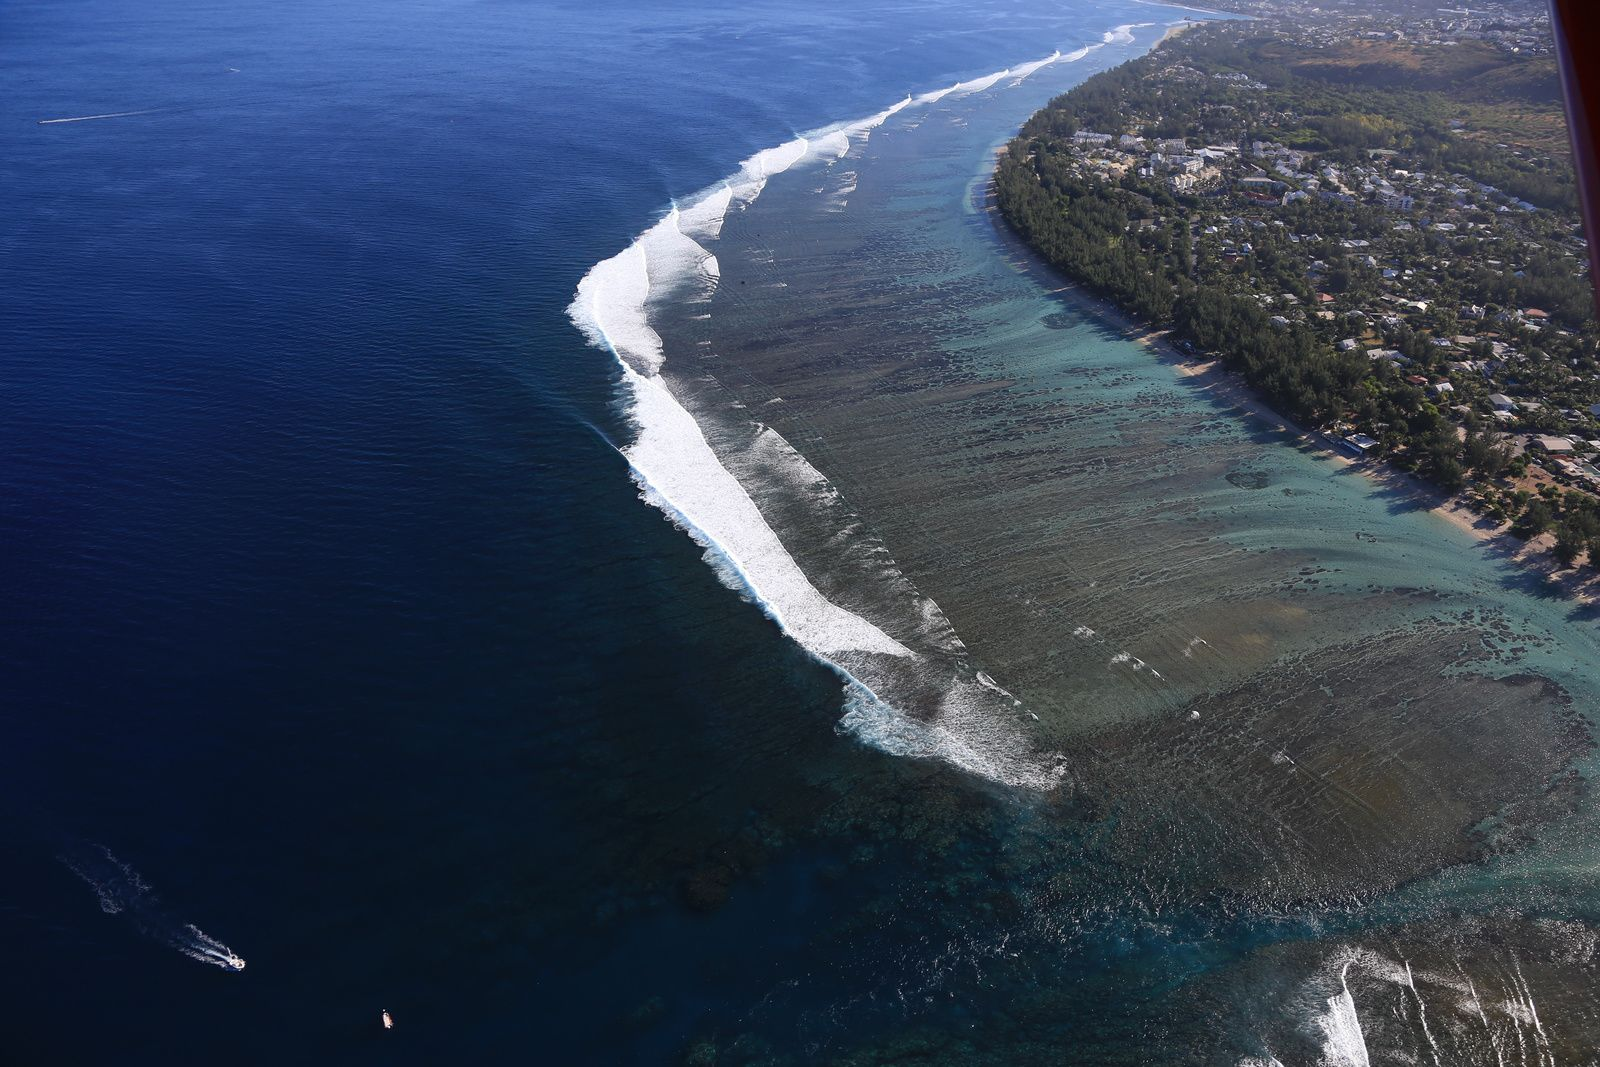 West Coast - Fringing reef, lagoon and surging waves - flying over in a microlight - photo © Bernard Duyck / june 2017